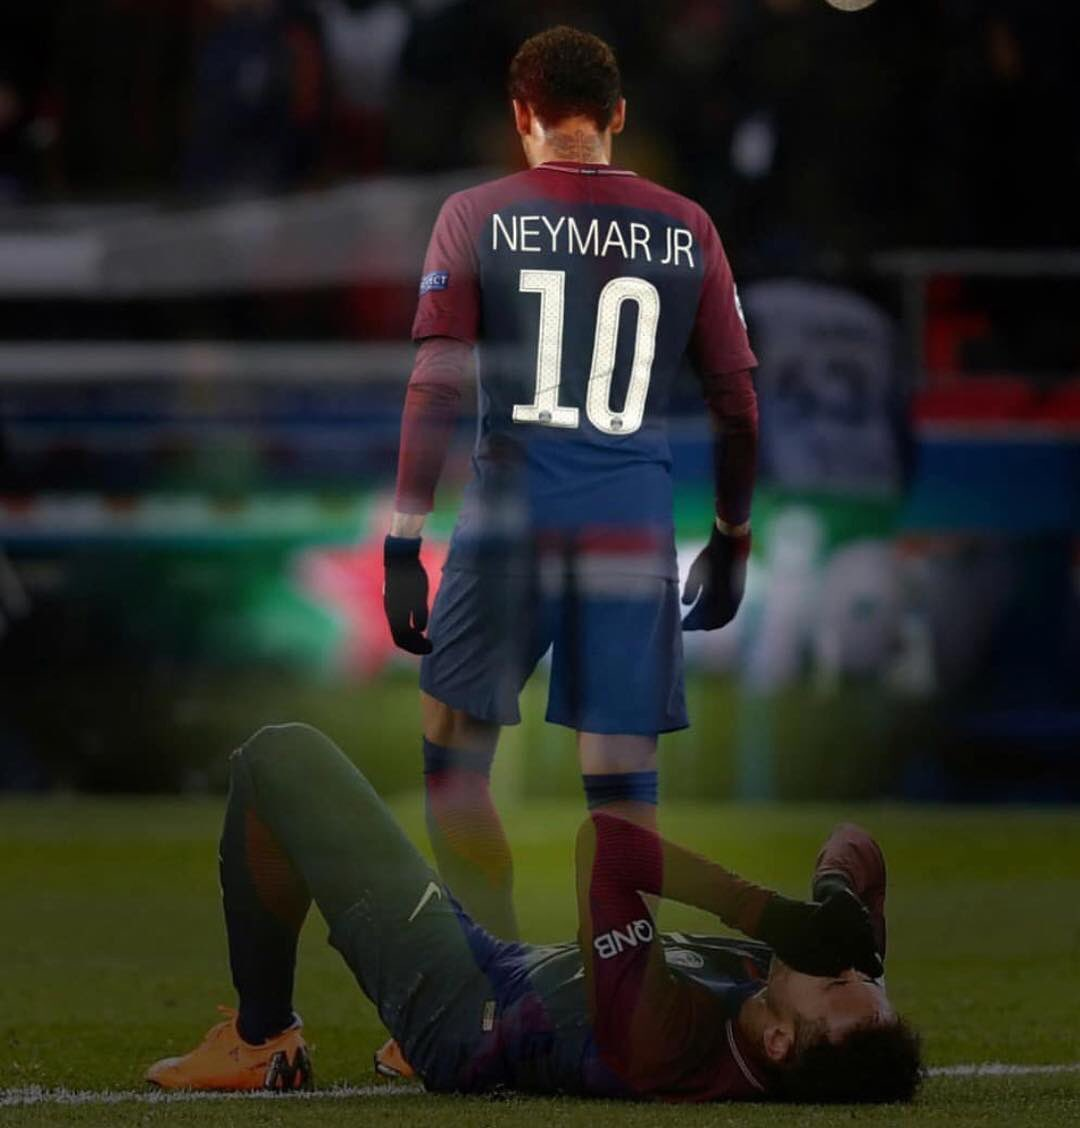 Neymar message on social networks after removal of PSG